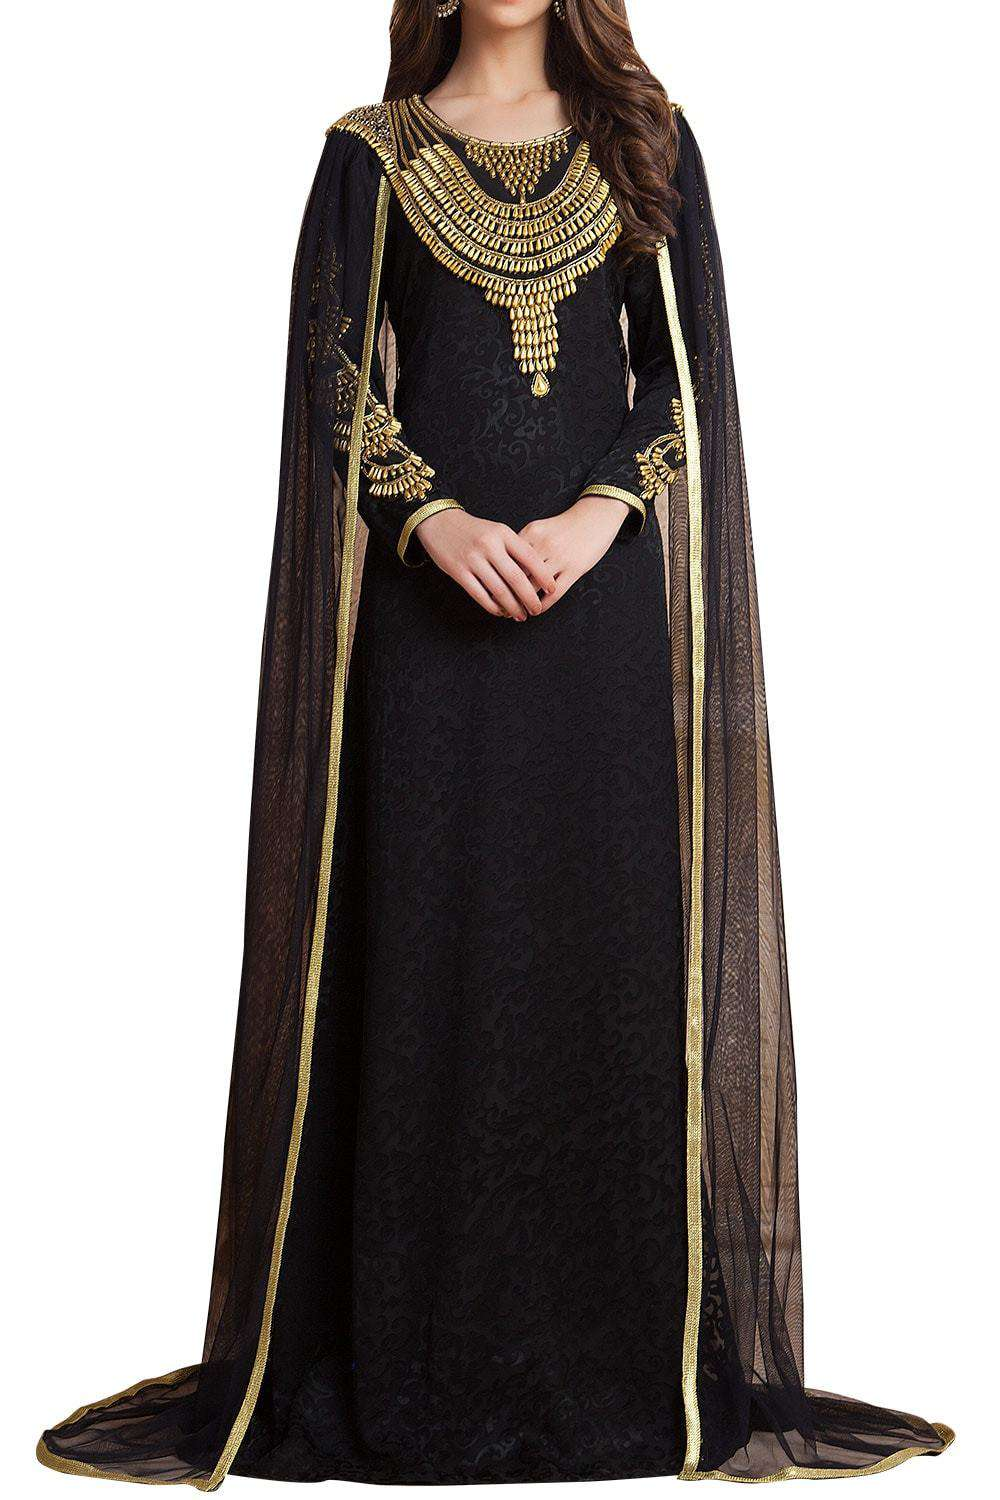 Black Color Net Brasso Arab Dubai Style Islamic Dress With Veil